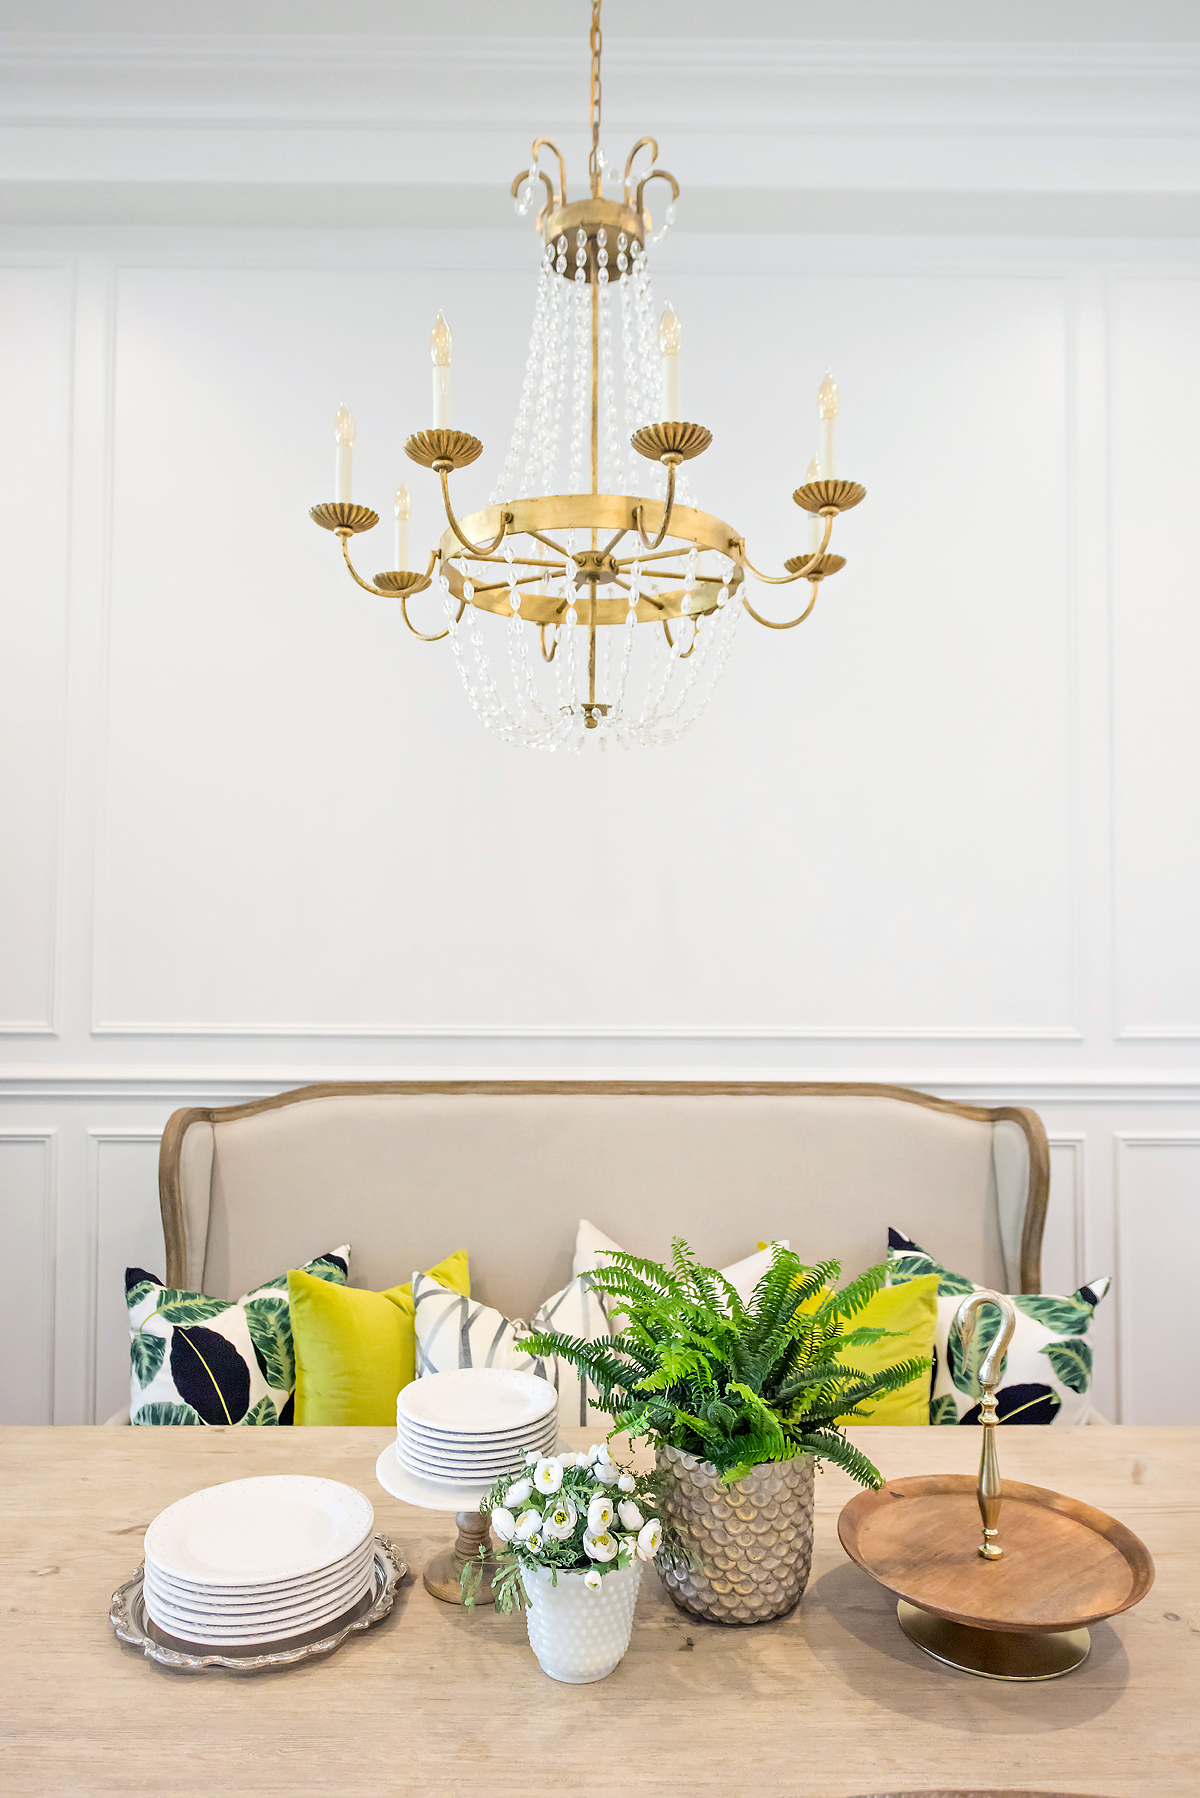 maggie-holmes-dining-room-makeover-with-color-15